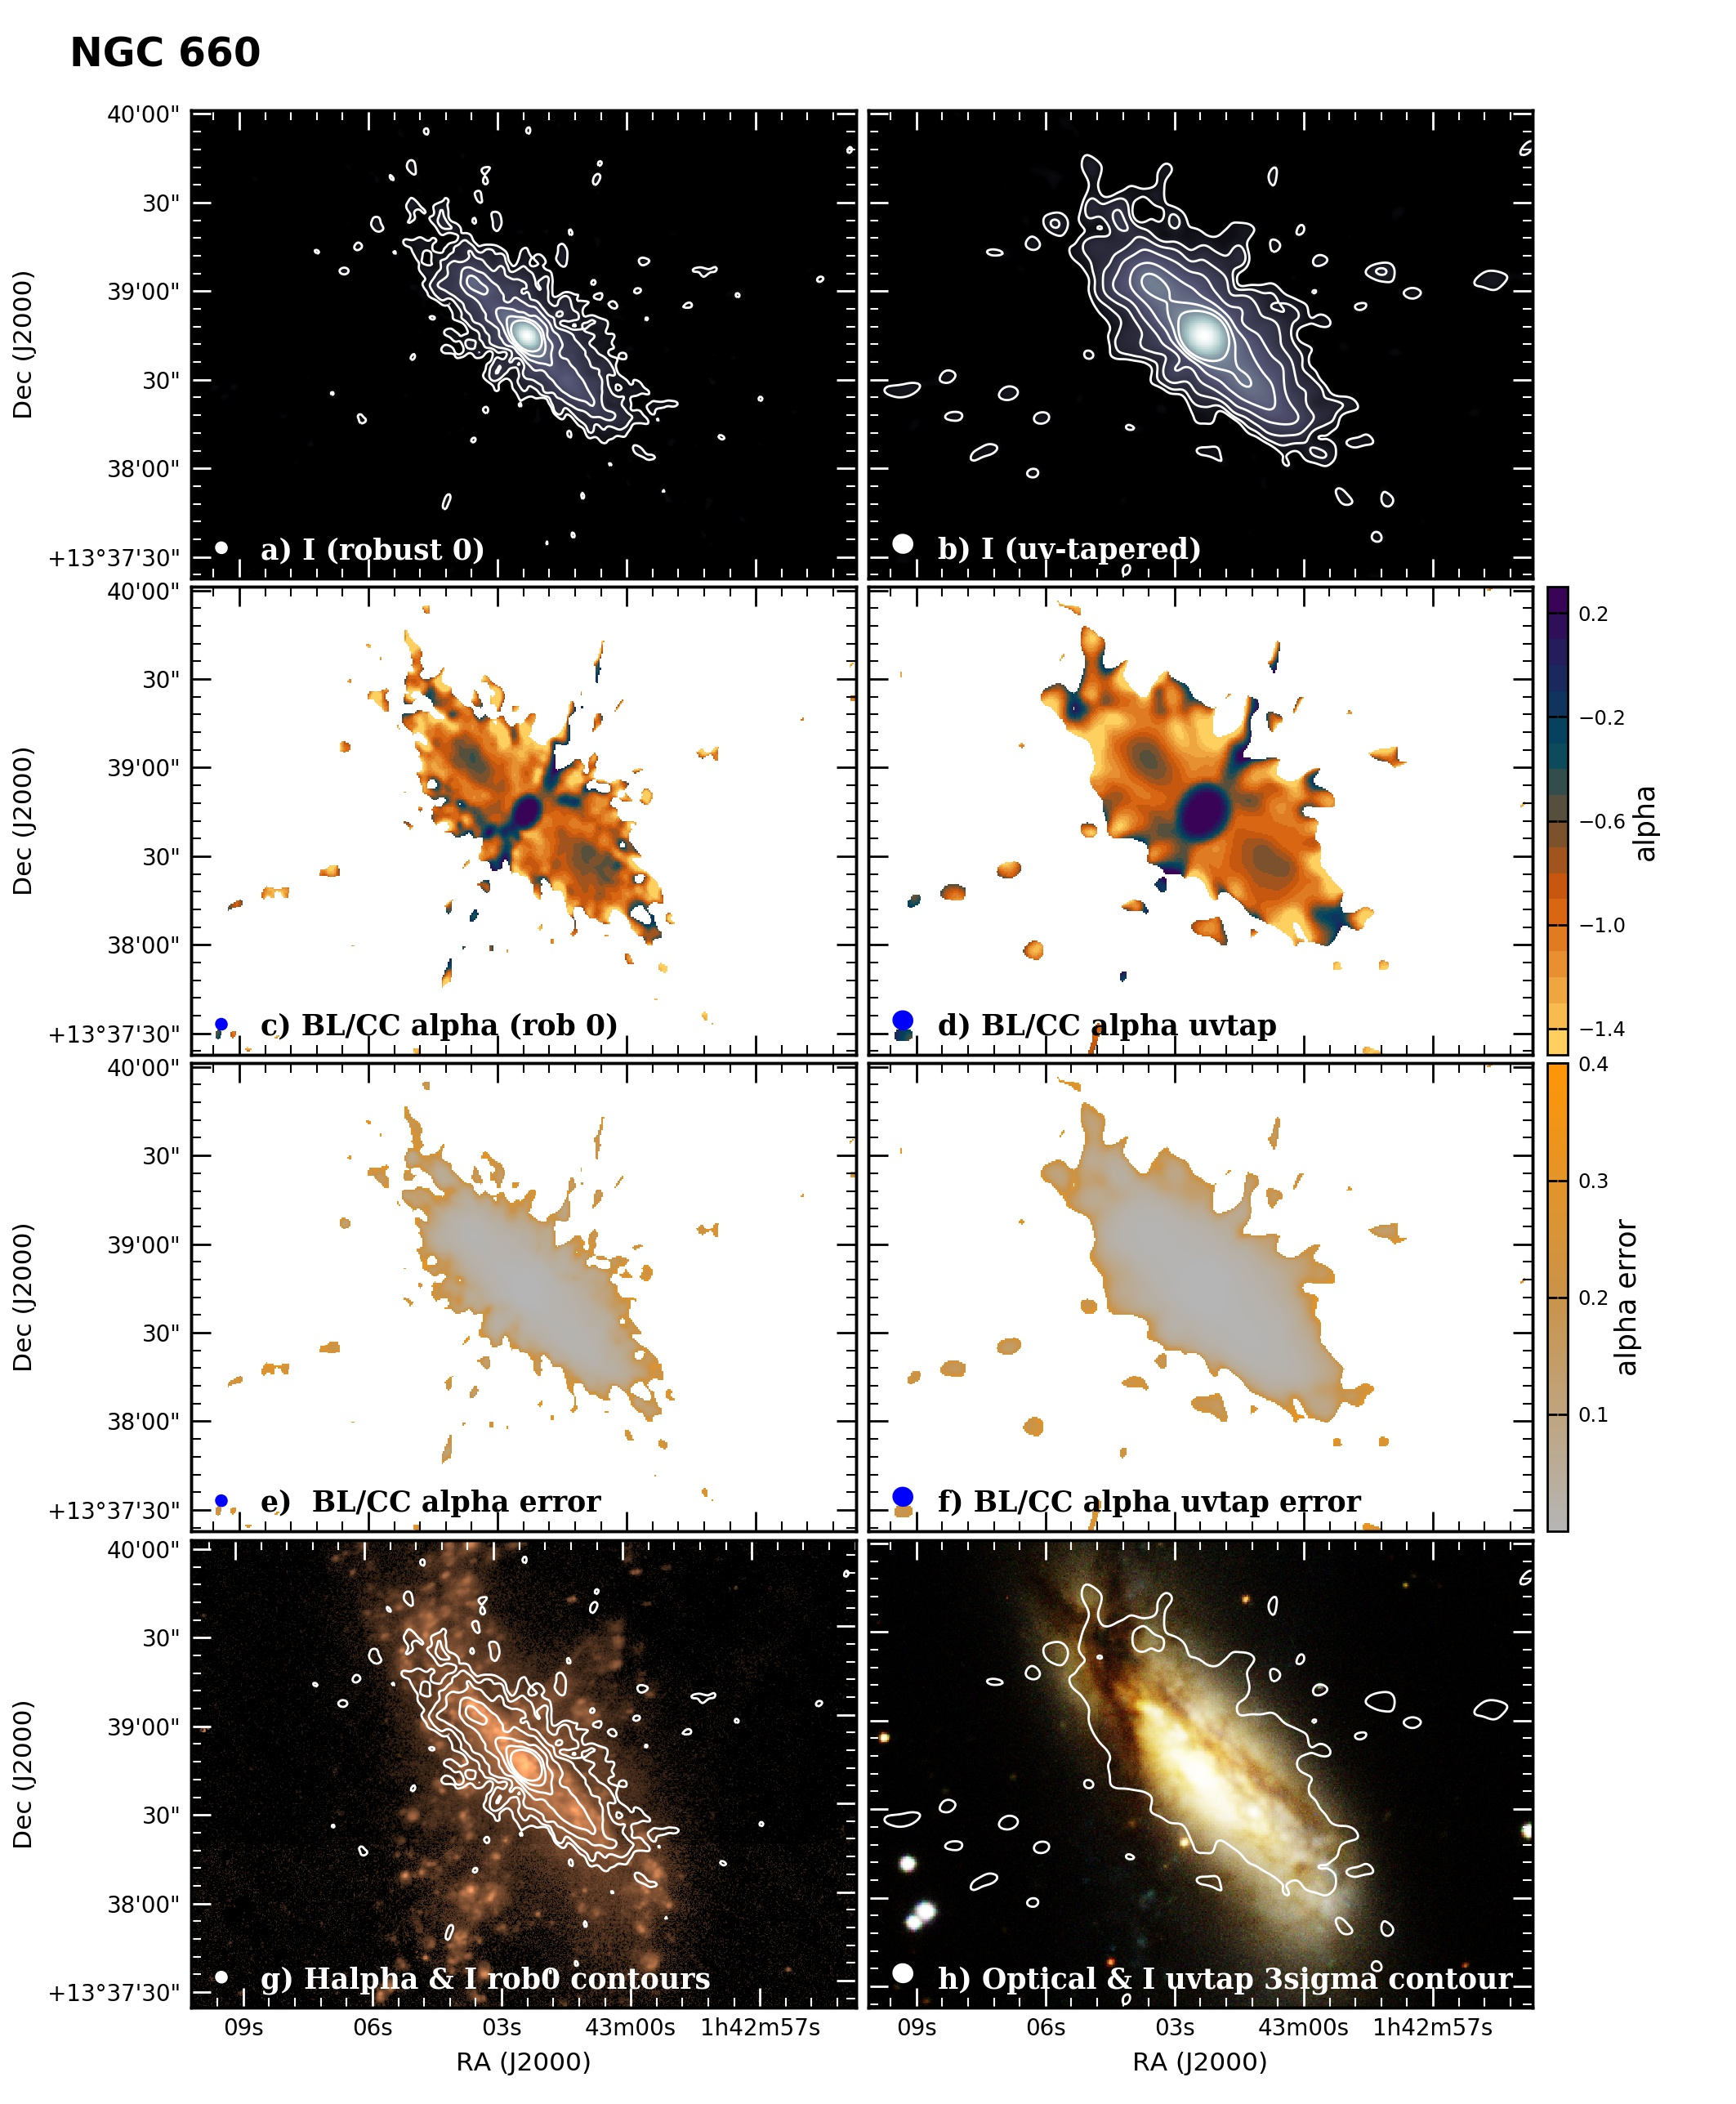 Panel image of NGC660 from B configuration data release III (Irwin et al. 2019)